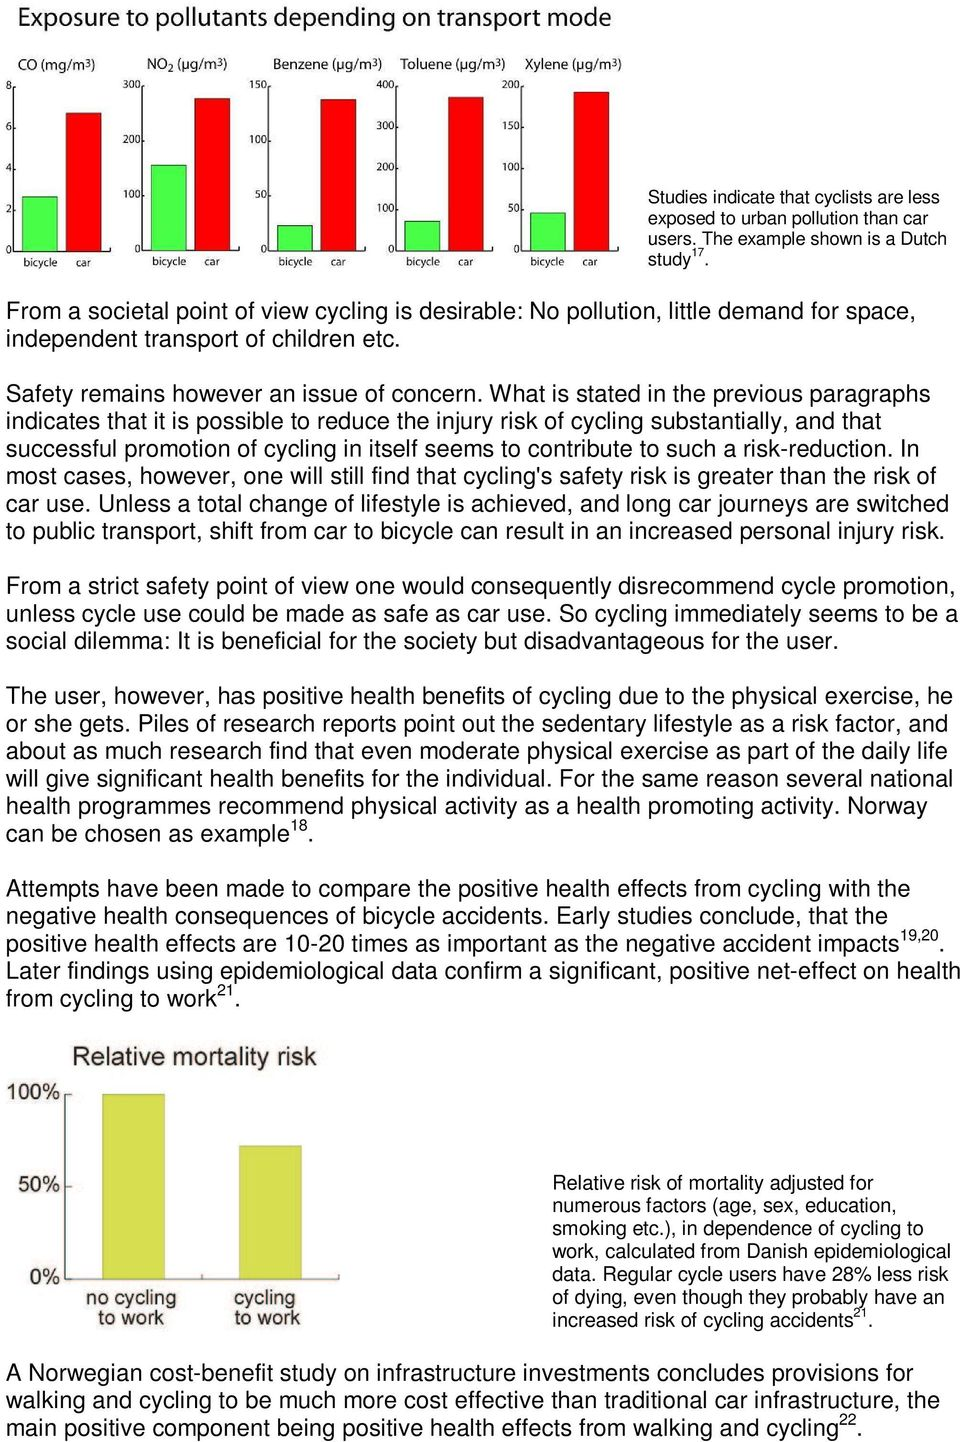 What is stated in the previous paragraphs indicates that it is possible to reduce the injury risk of cycling substantially, and that successful promotion of cycling in itself seems to contribute to